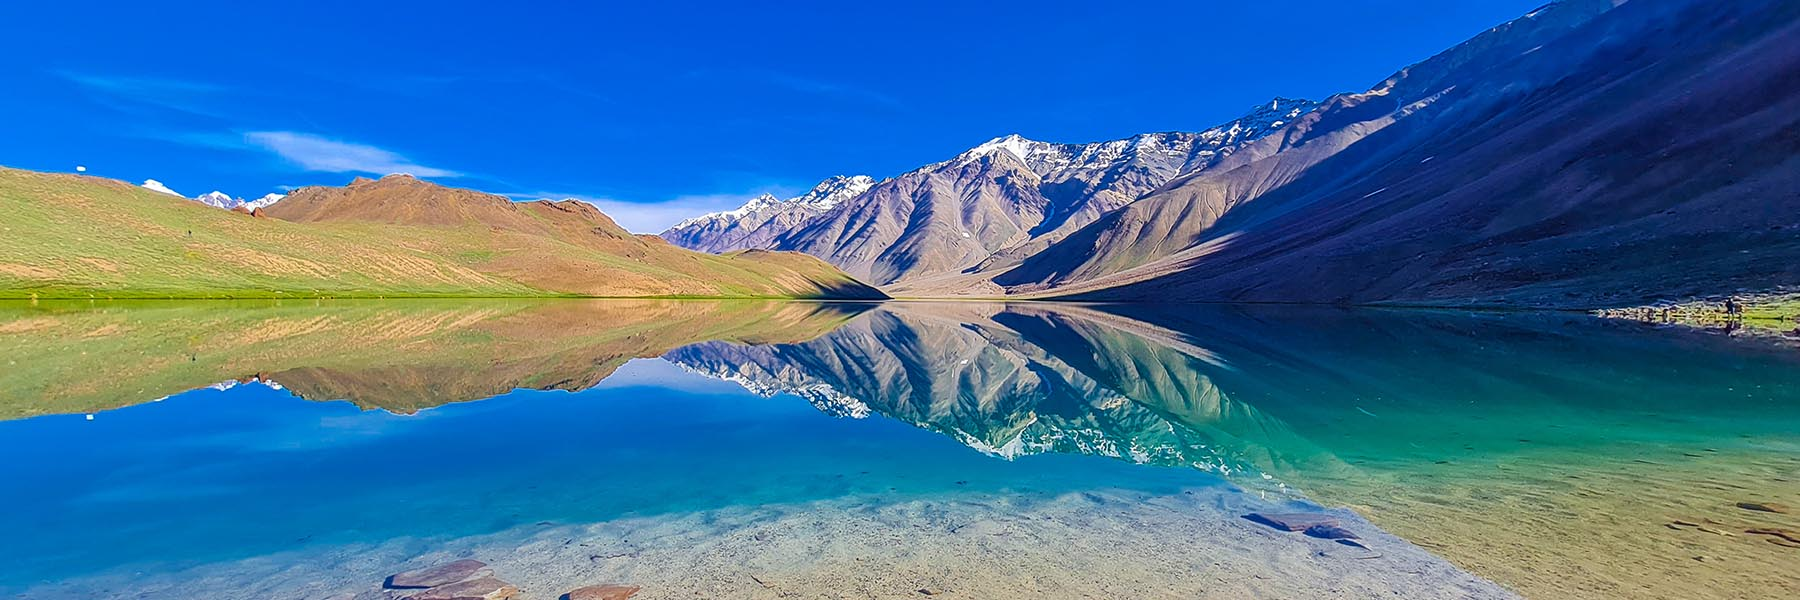 What to see in India's Spiti Valley